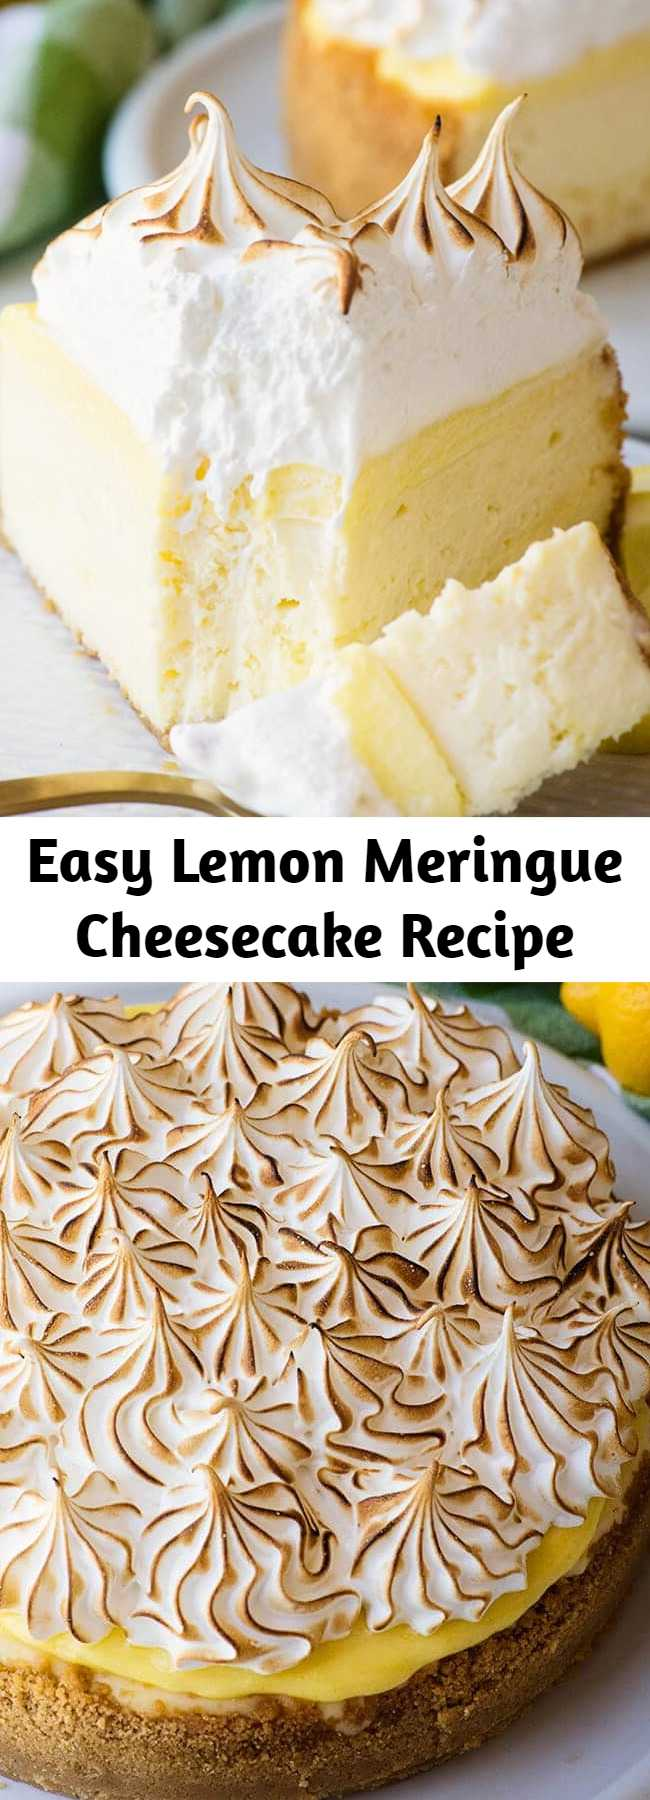 Easy Lemon Meringue Cheesecake Recipe - This Lemon meringue pie cheesecake is decadent and rich – a lemon cheesecake with a ribbon of homemade lemon curd running through the middle, another layer of lemon curd spread across the top. Baked in a Lemon cookie crumb crust and topped with a fluffy toasted meringue every bite is amazing. #dessert #holidayrecipes #Lemonmeringue #cheesecake #partytreats